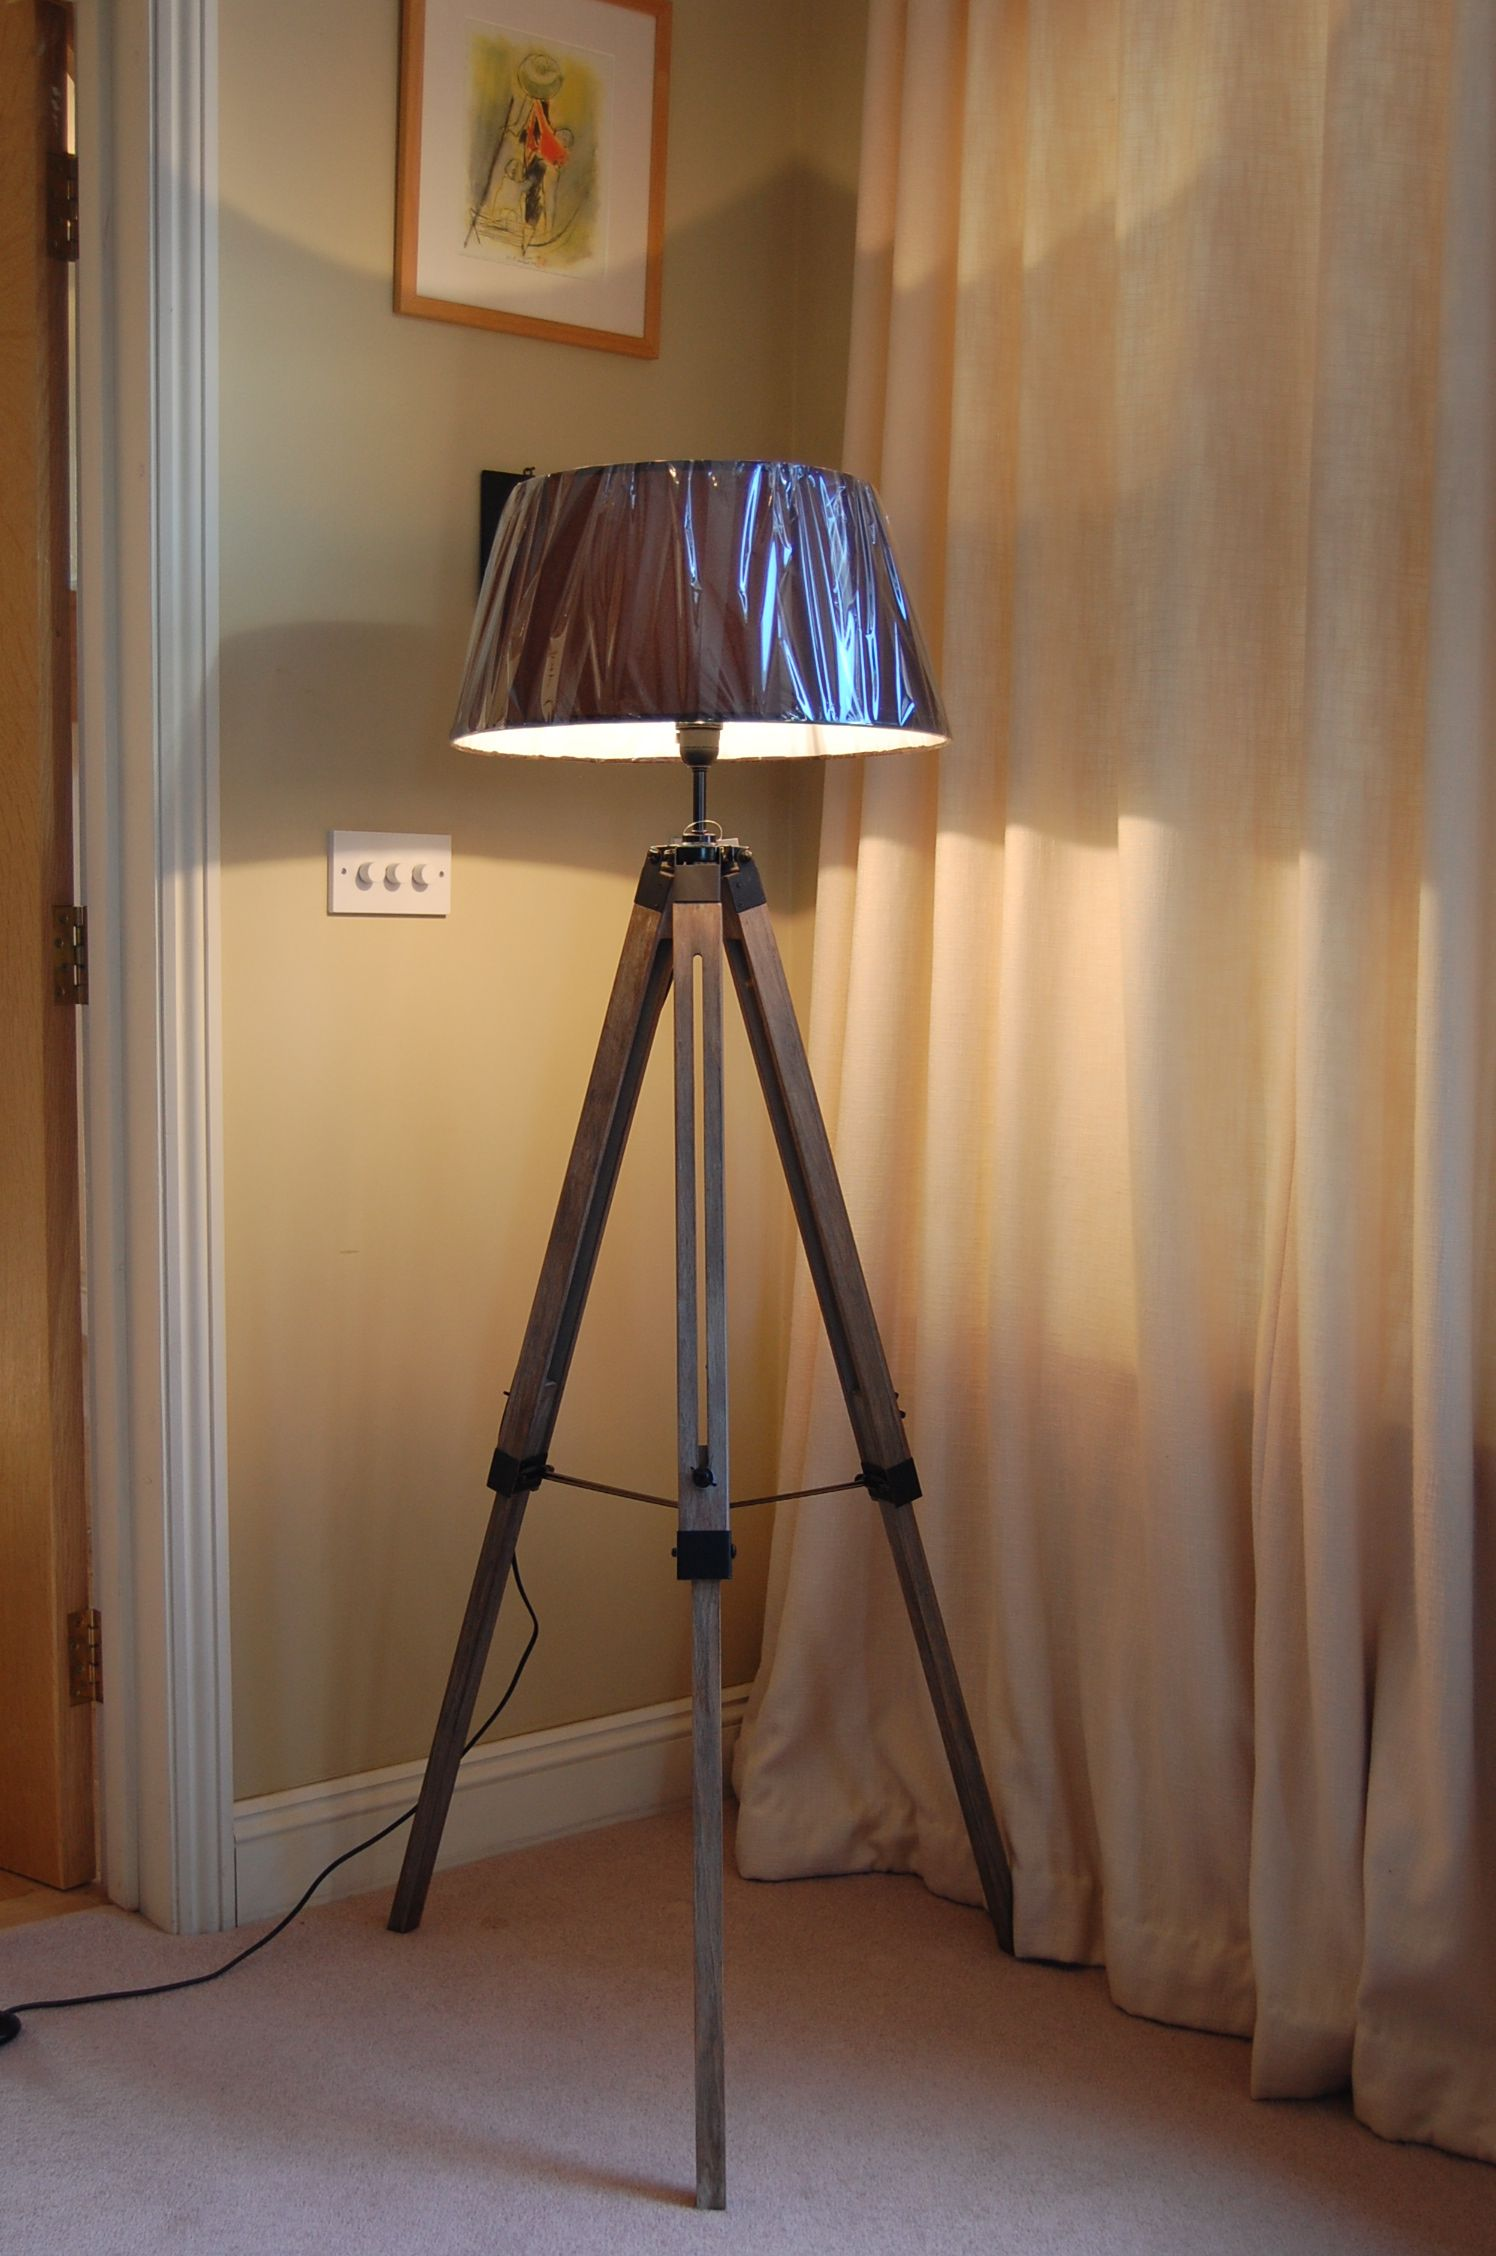 Awesome Tripod Lamp for Interior Lighting Ideas: Tripod Lamp | Swing Arm Floor Lamp | Floor Lamp With Storage